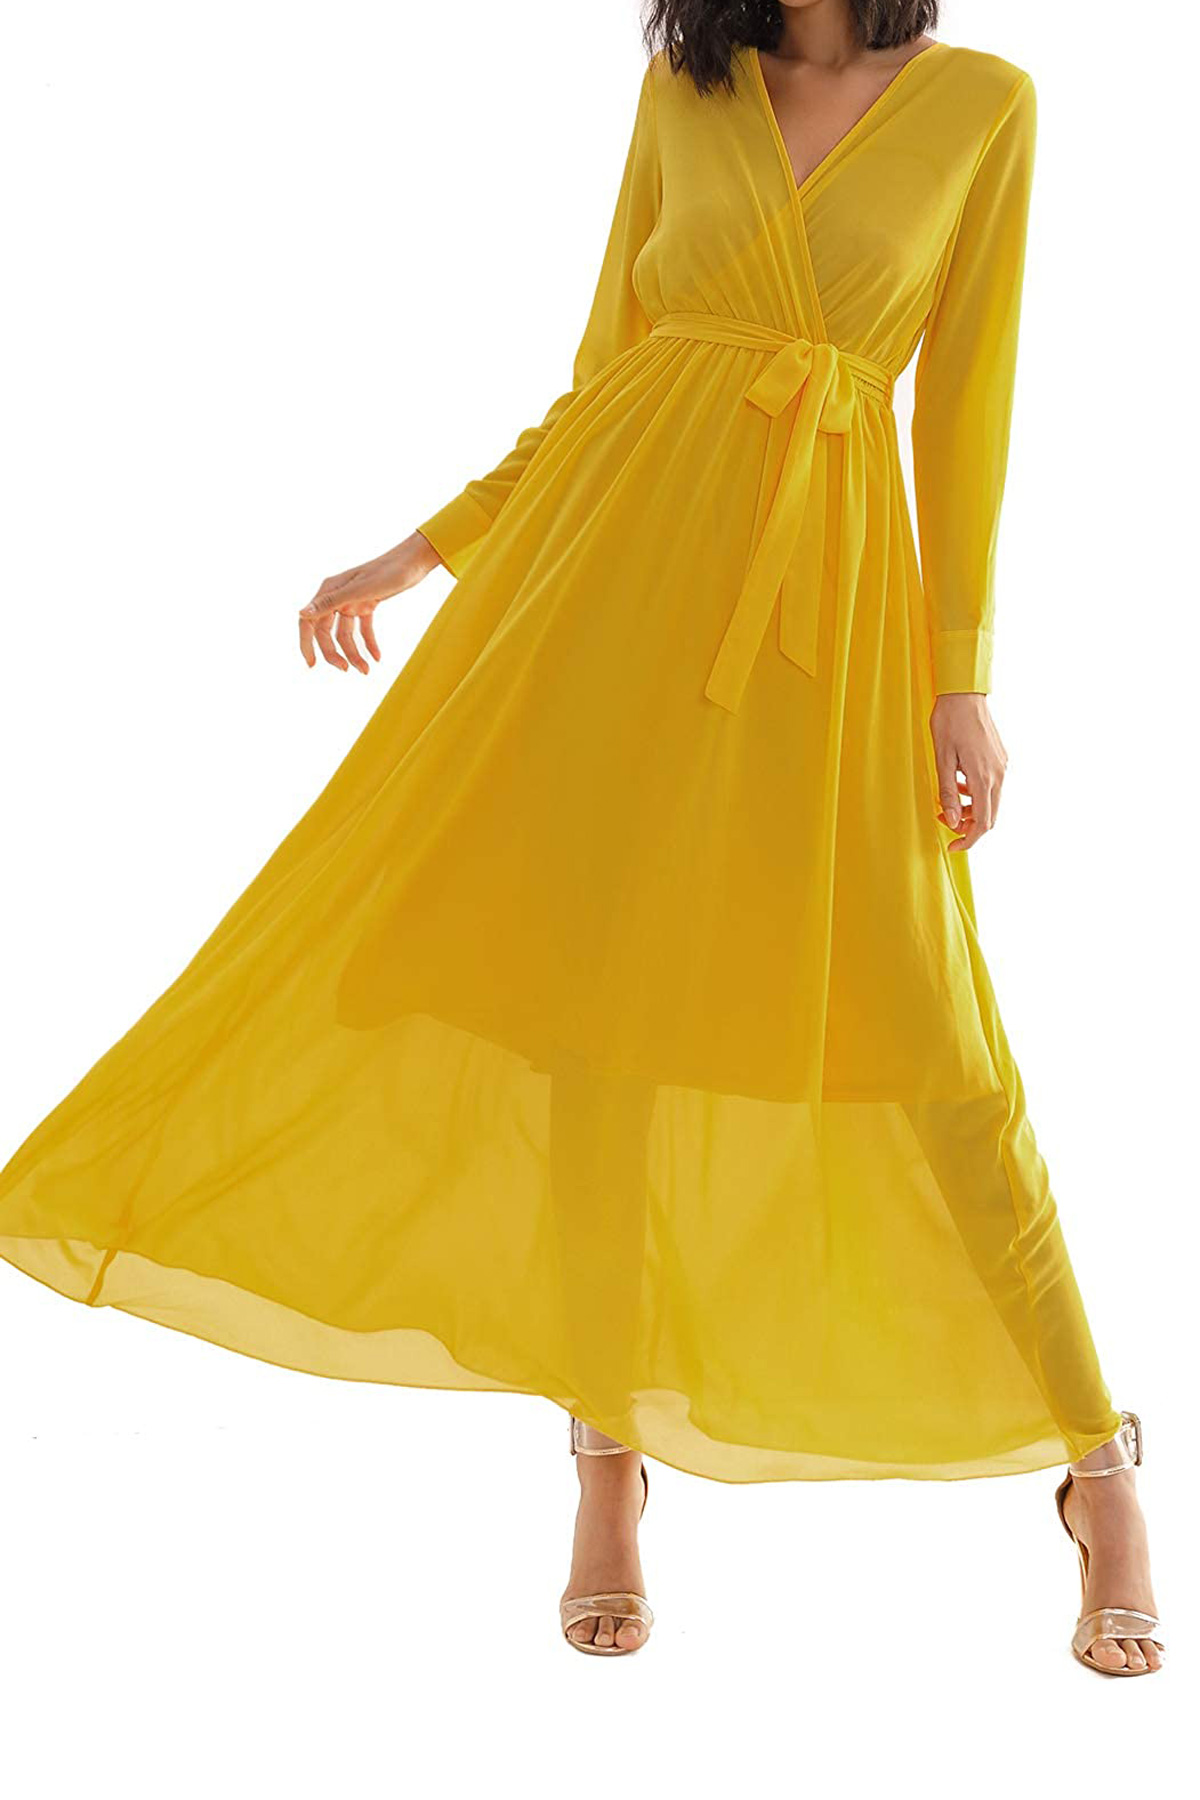 Kate Middleton-Inspired Spring Wrap Dress: Double Chic Chiffon Maxi Dress with Pockets